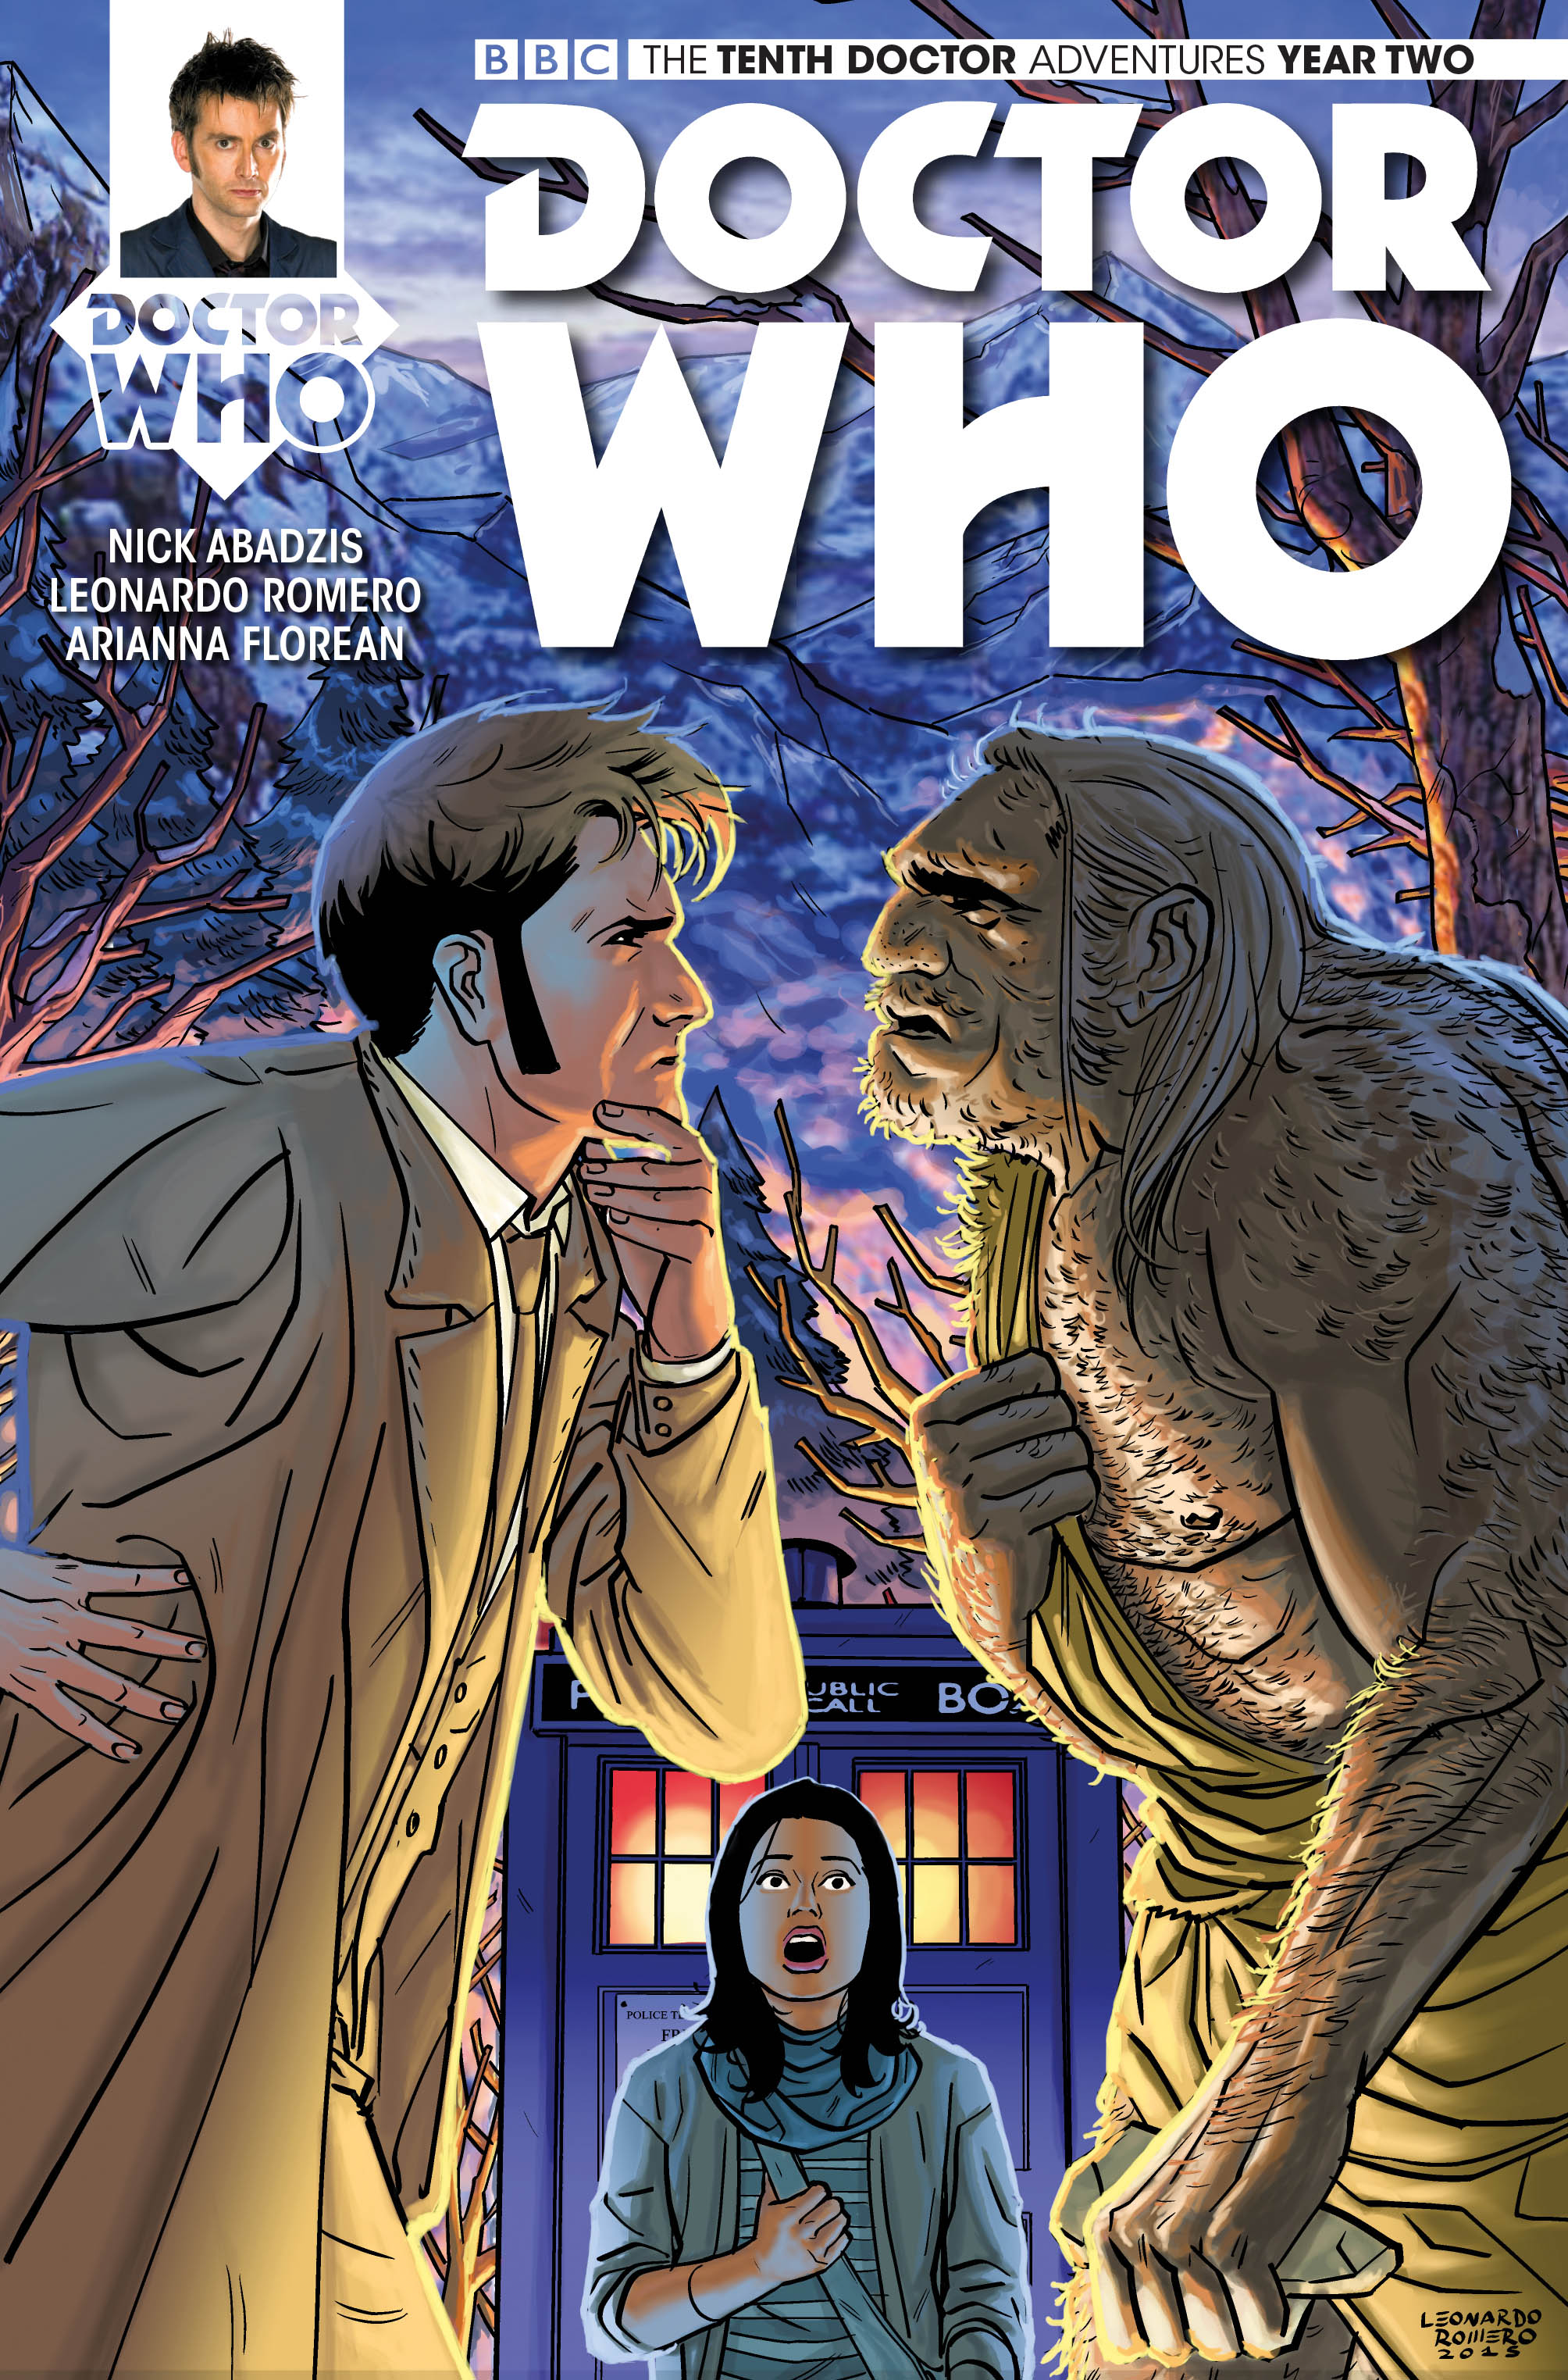 Doctor Who The Tenth Year Two 4 Cover